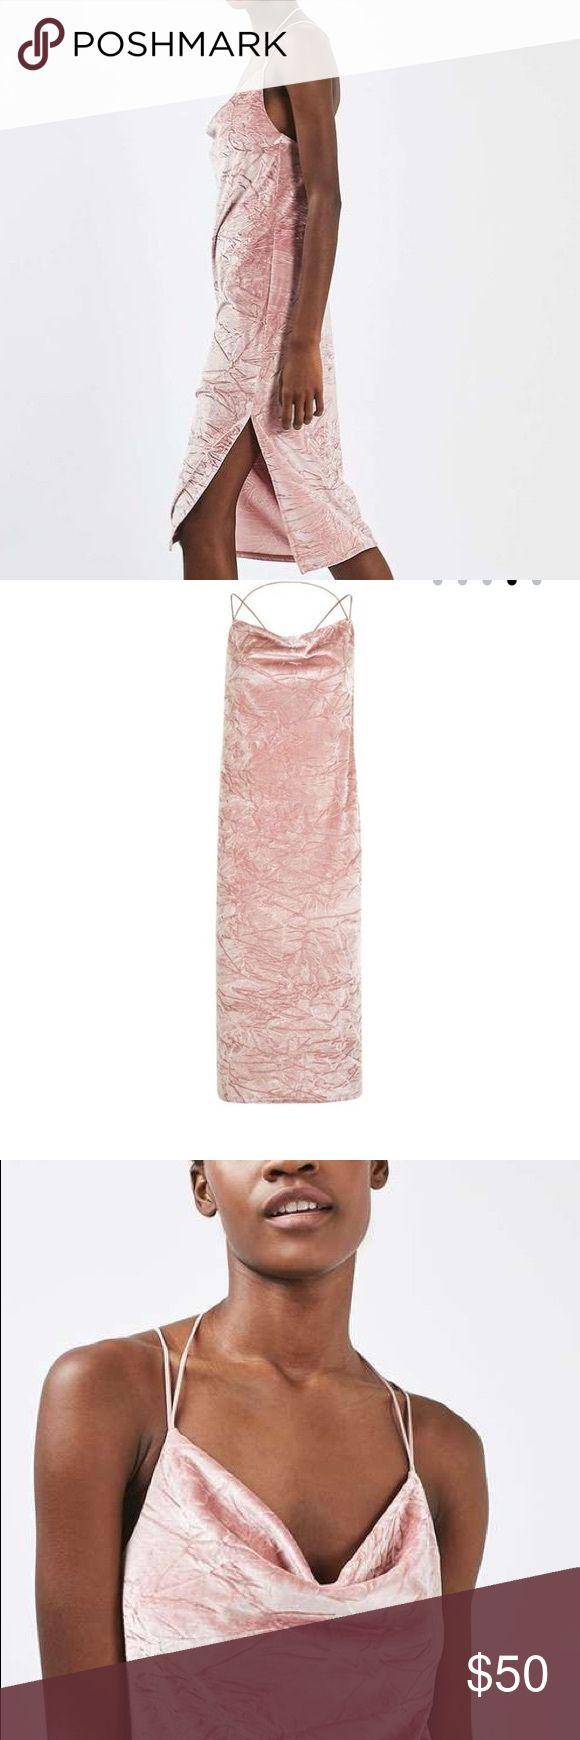 💕 blush crushed velvet cowl neck midi dress Embrace the '90s in this cute midi dress in pink crushed velvet. With a cowl neck and cross back strap detail, it looks perfect worn as a party piece or over a plain T-shirt during the day. Has a side slit on the right. It's all about velvet this season. 91% Polyester, 9% Elastane. Machine wash. US size 2. U.K. Size 6. EUR size 34. Topshop Dresses Midi